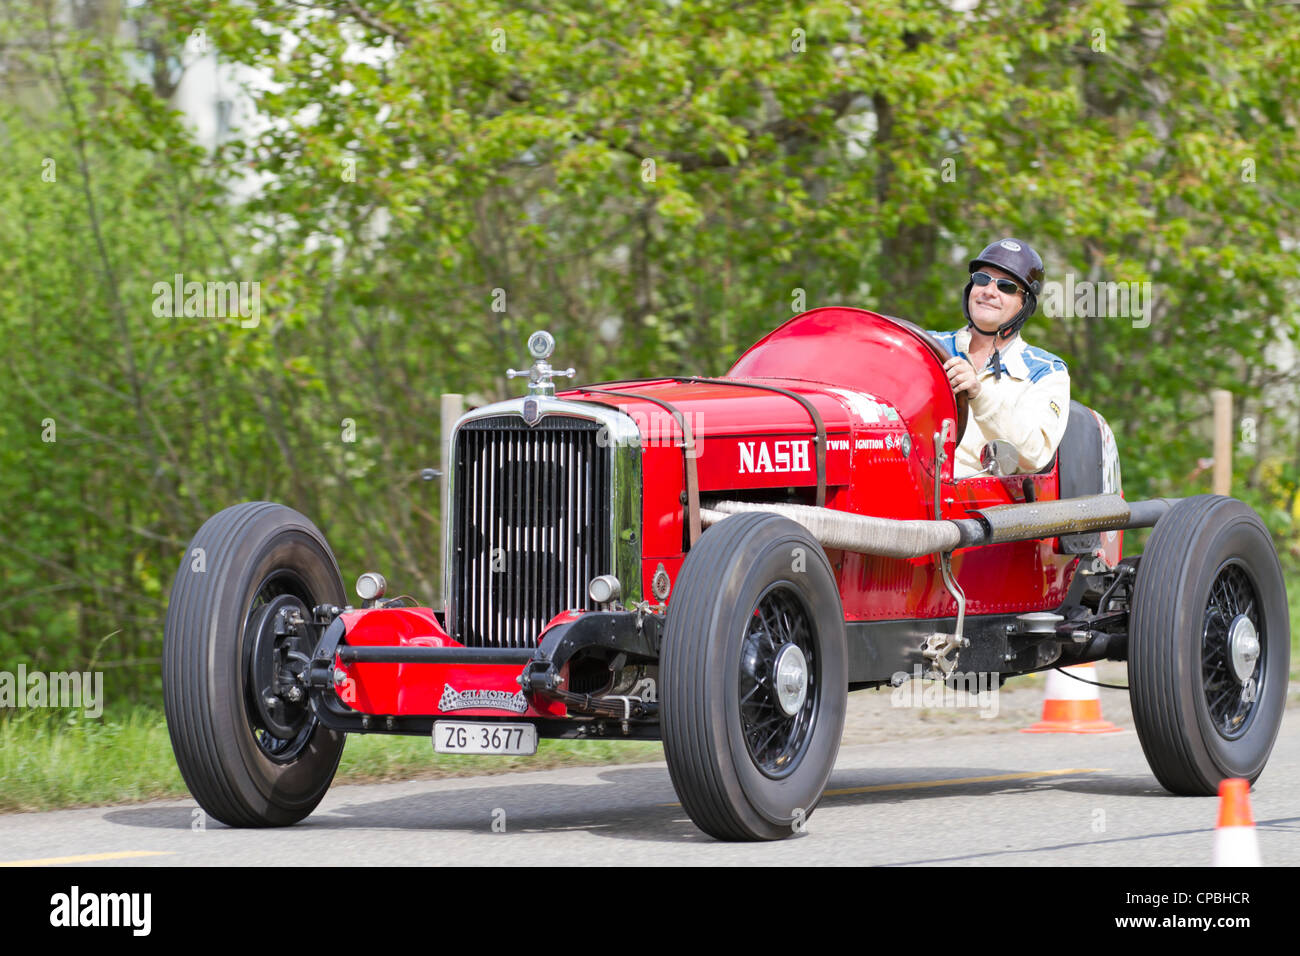 Vintage pre war race car Nash 480 Aeropower from 1930 at Grand Prix in Mutschellen, SUI on April 29, 2012 - Stock Image